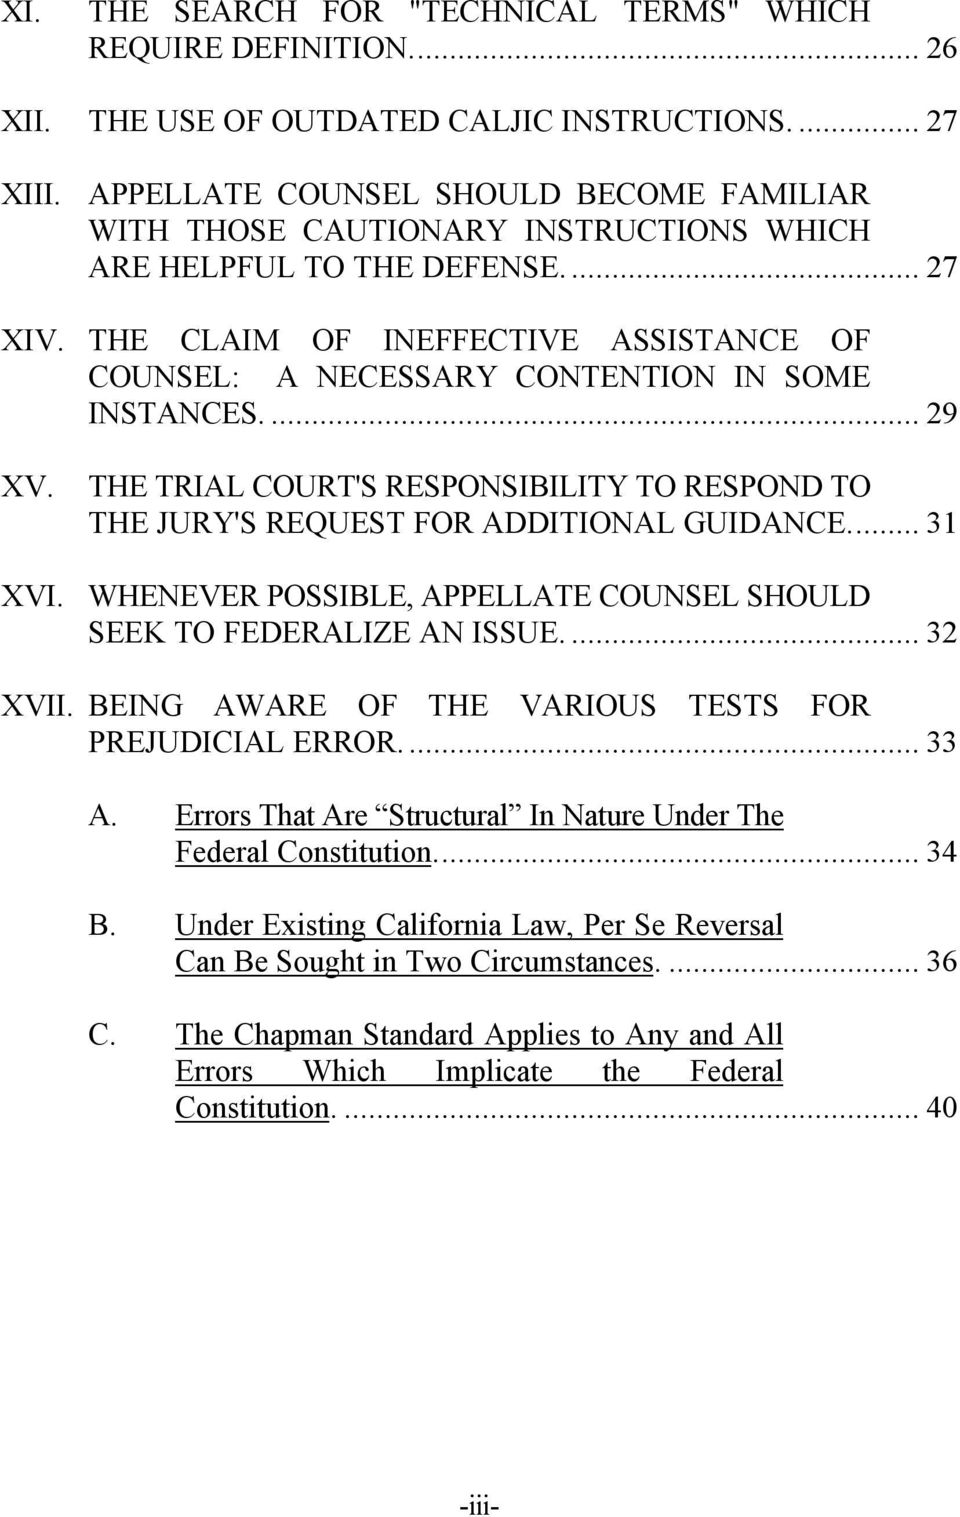 THE CLAIM OF INEFFECTIVE ASSISTANCE OF COUNSEL: A NECESSARY CONTENTION IN SOME INSTANCES.... 29 XV. XVI. THE TRIAL COURT'S RESPONSIBILITY TO RESPOND TO THE JURY'S REQUEST FOR ADDITIONAL GUIDANCE.